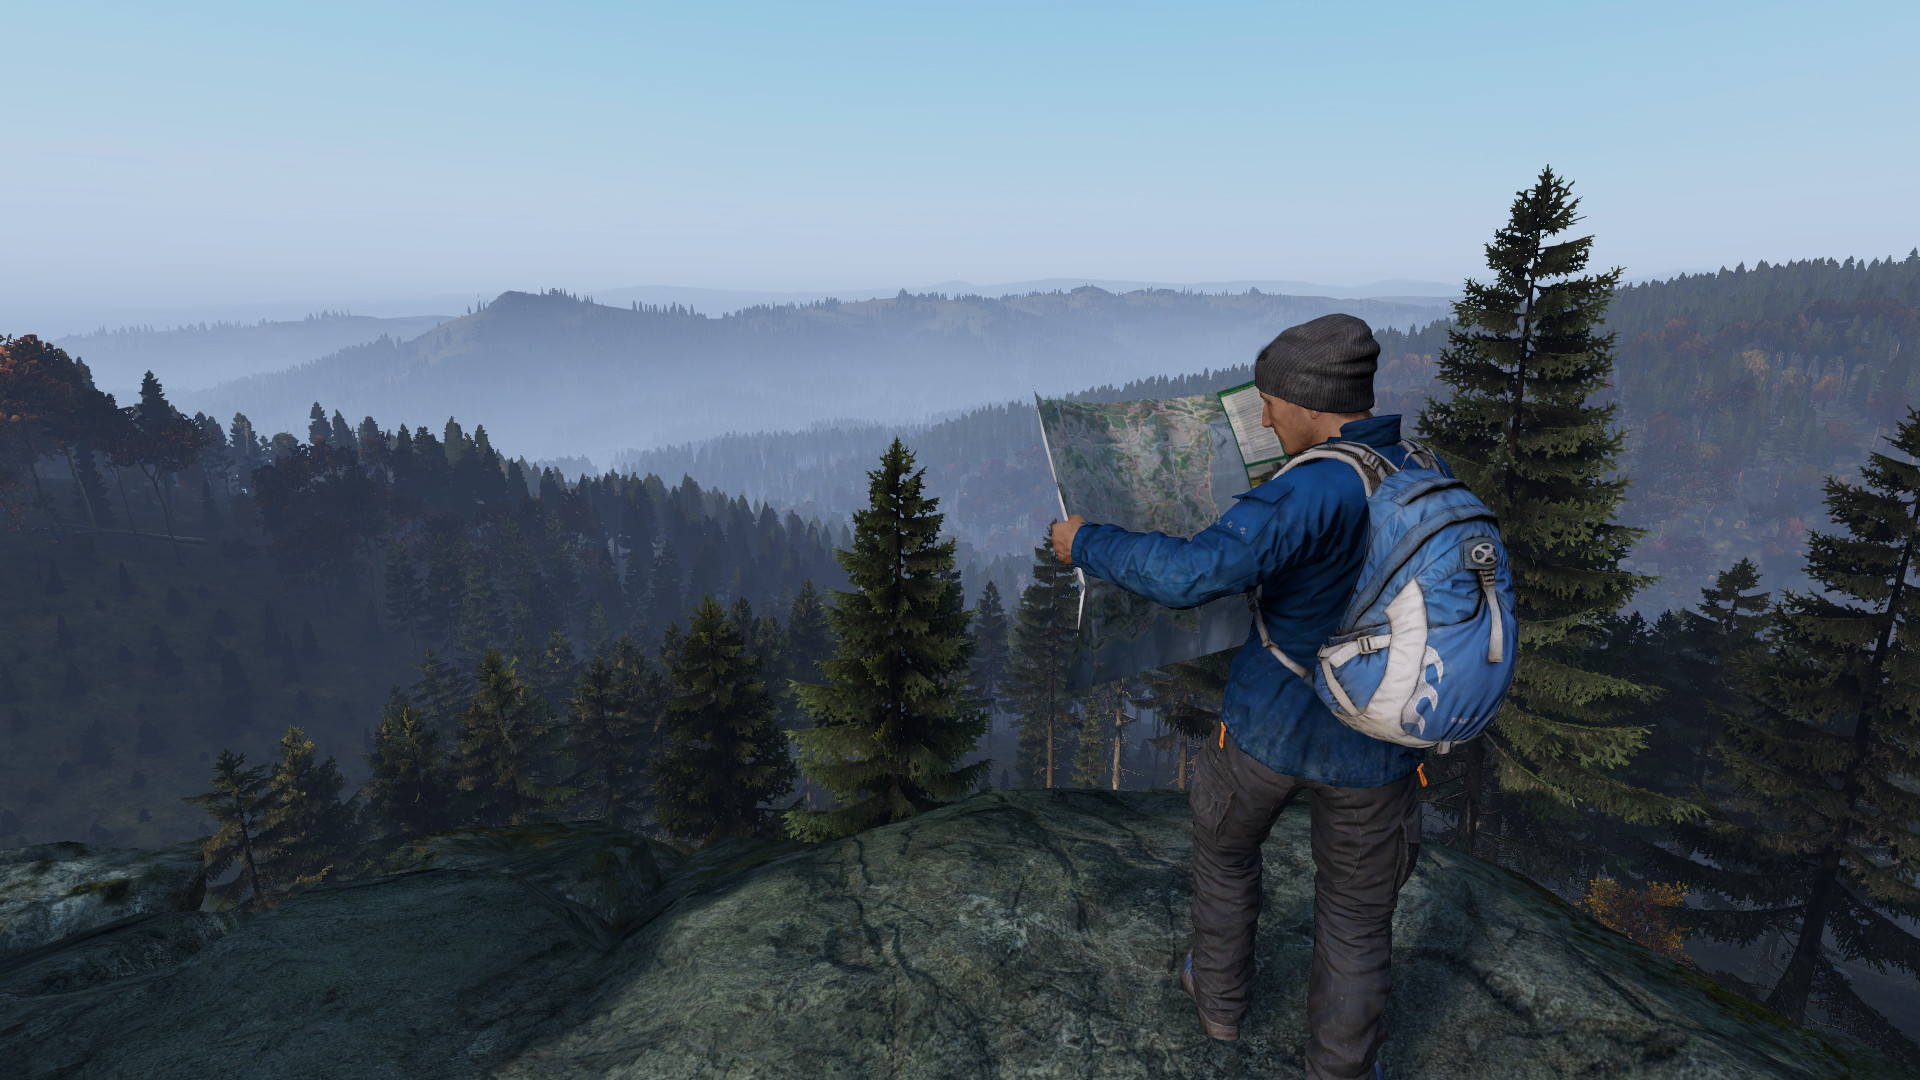 Dayz Karte Ps4.Dayz Standalone Map Wiki Server Update